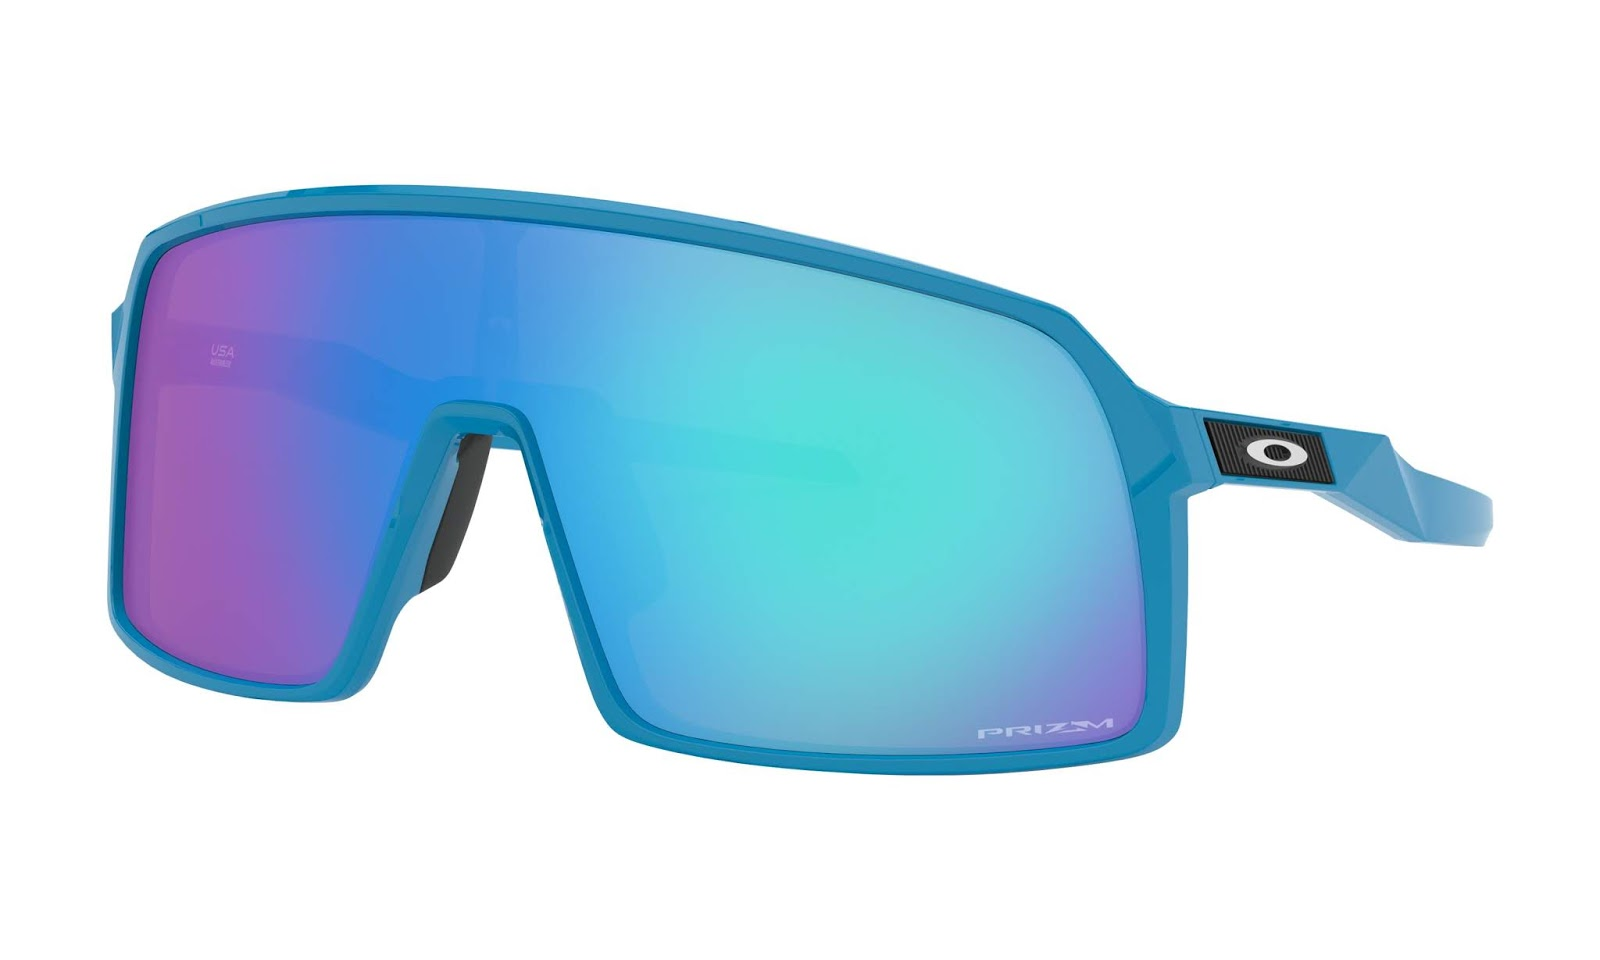 9b28f2fd25 sky + prizm sapphire  260 lens pre coated with Oakley hydrophobic nano  solution complete package comes with box and microfiber pouch